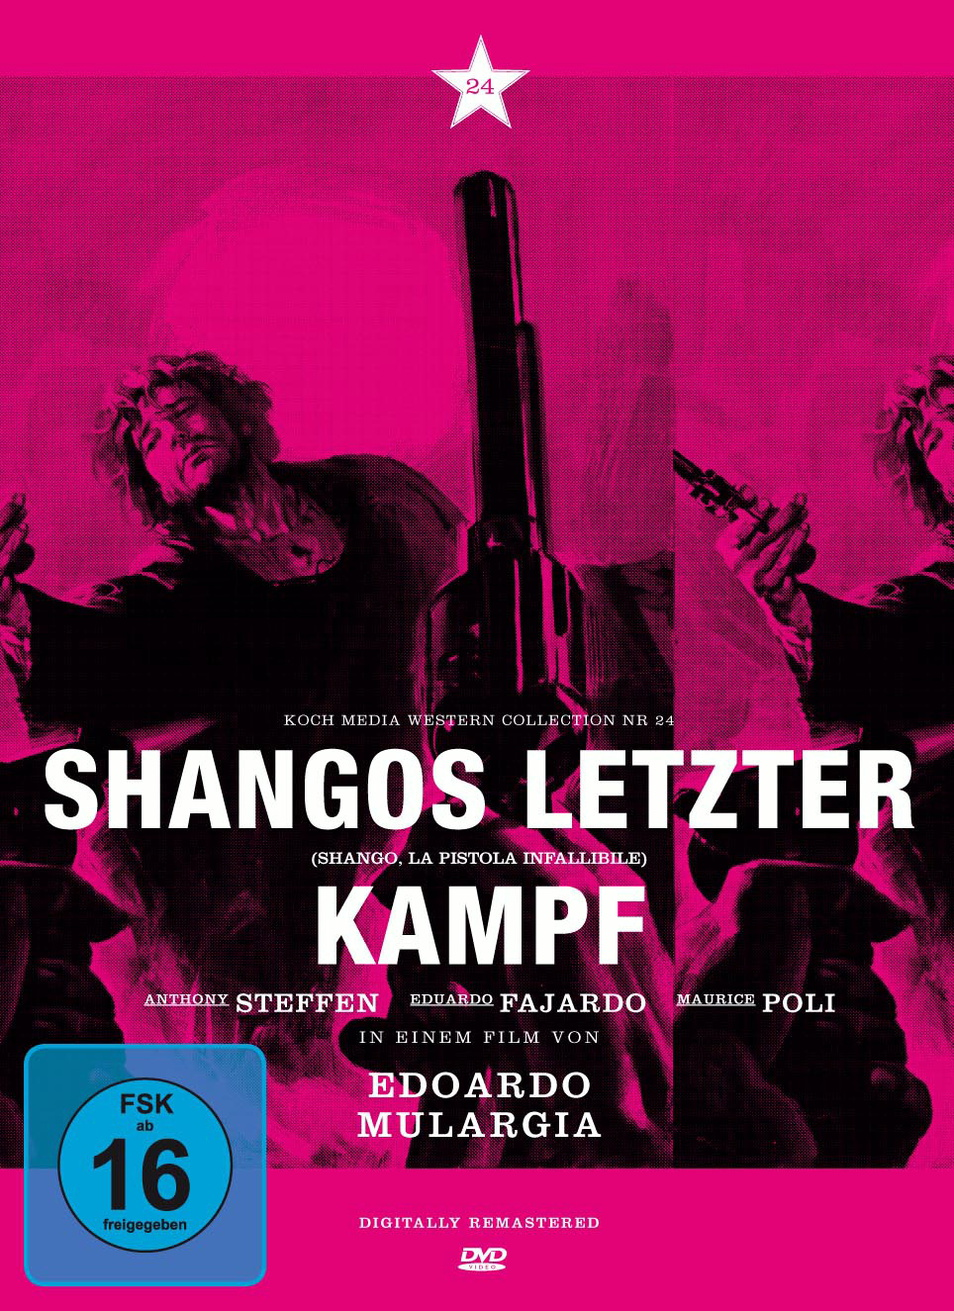 Shangos letzter Kampf - Western Collection 24